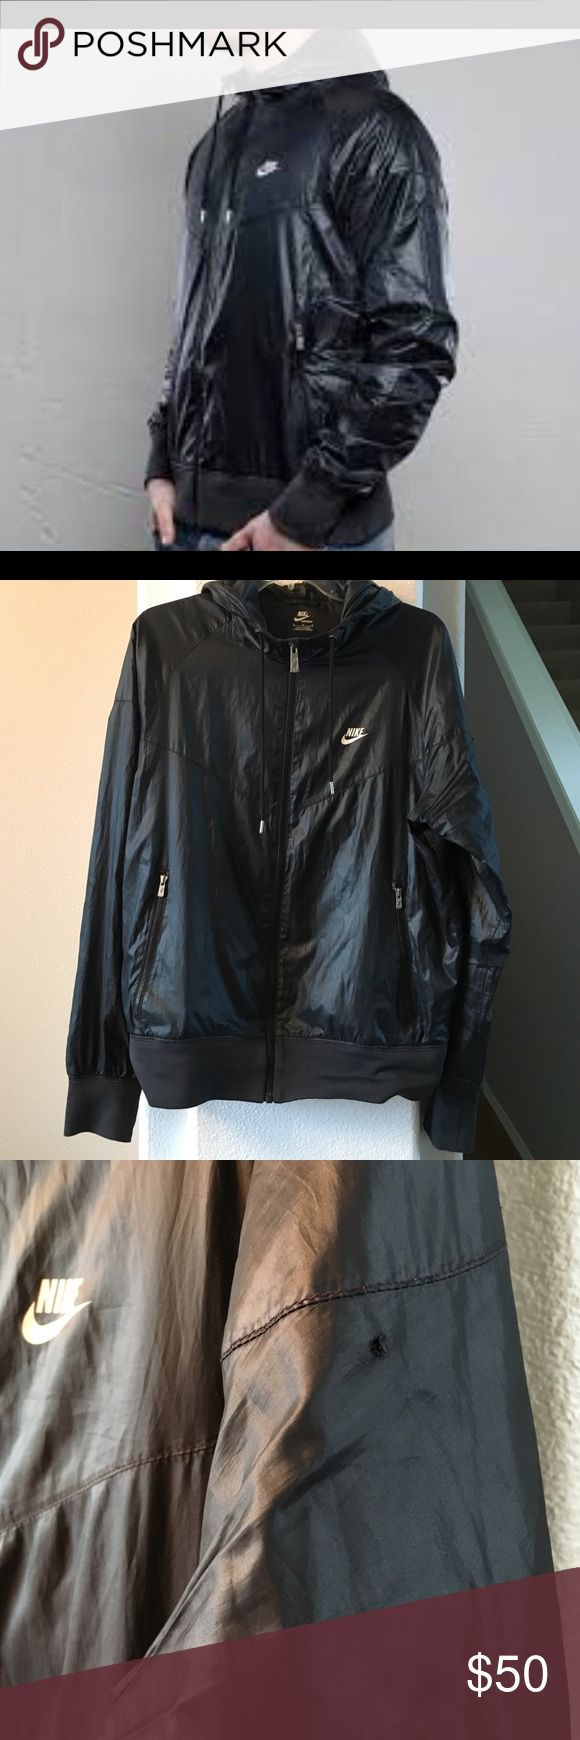 """New Listing! Men's Nike Windrunner Black Nike Windrunner! Water resistant shell- back ventilation- mesh lining- pockets- hoodie! Size medium. One little snag on left arm- see pic- otherwise great preowned condition! 22"""" across chest and 26"""" long. Nike Jackets & Coats Windbreakers"""